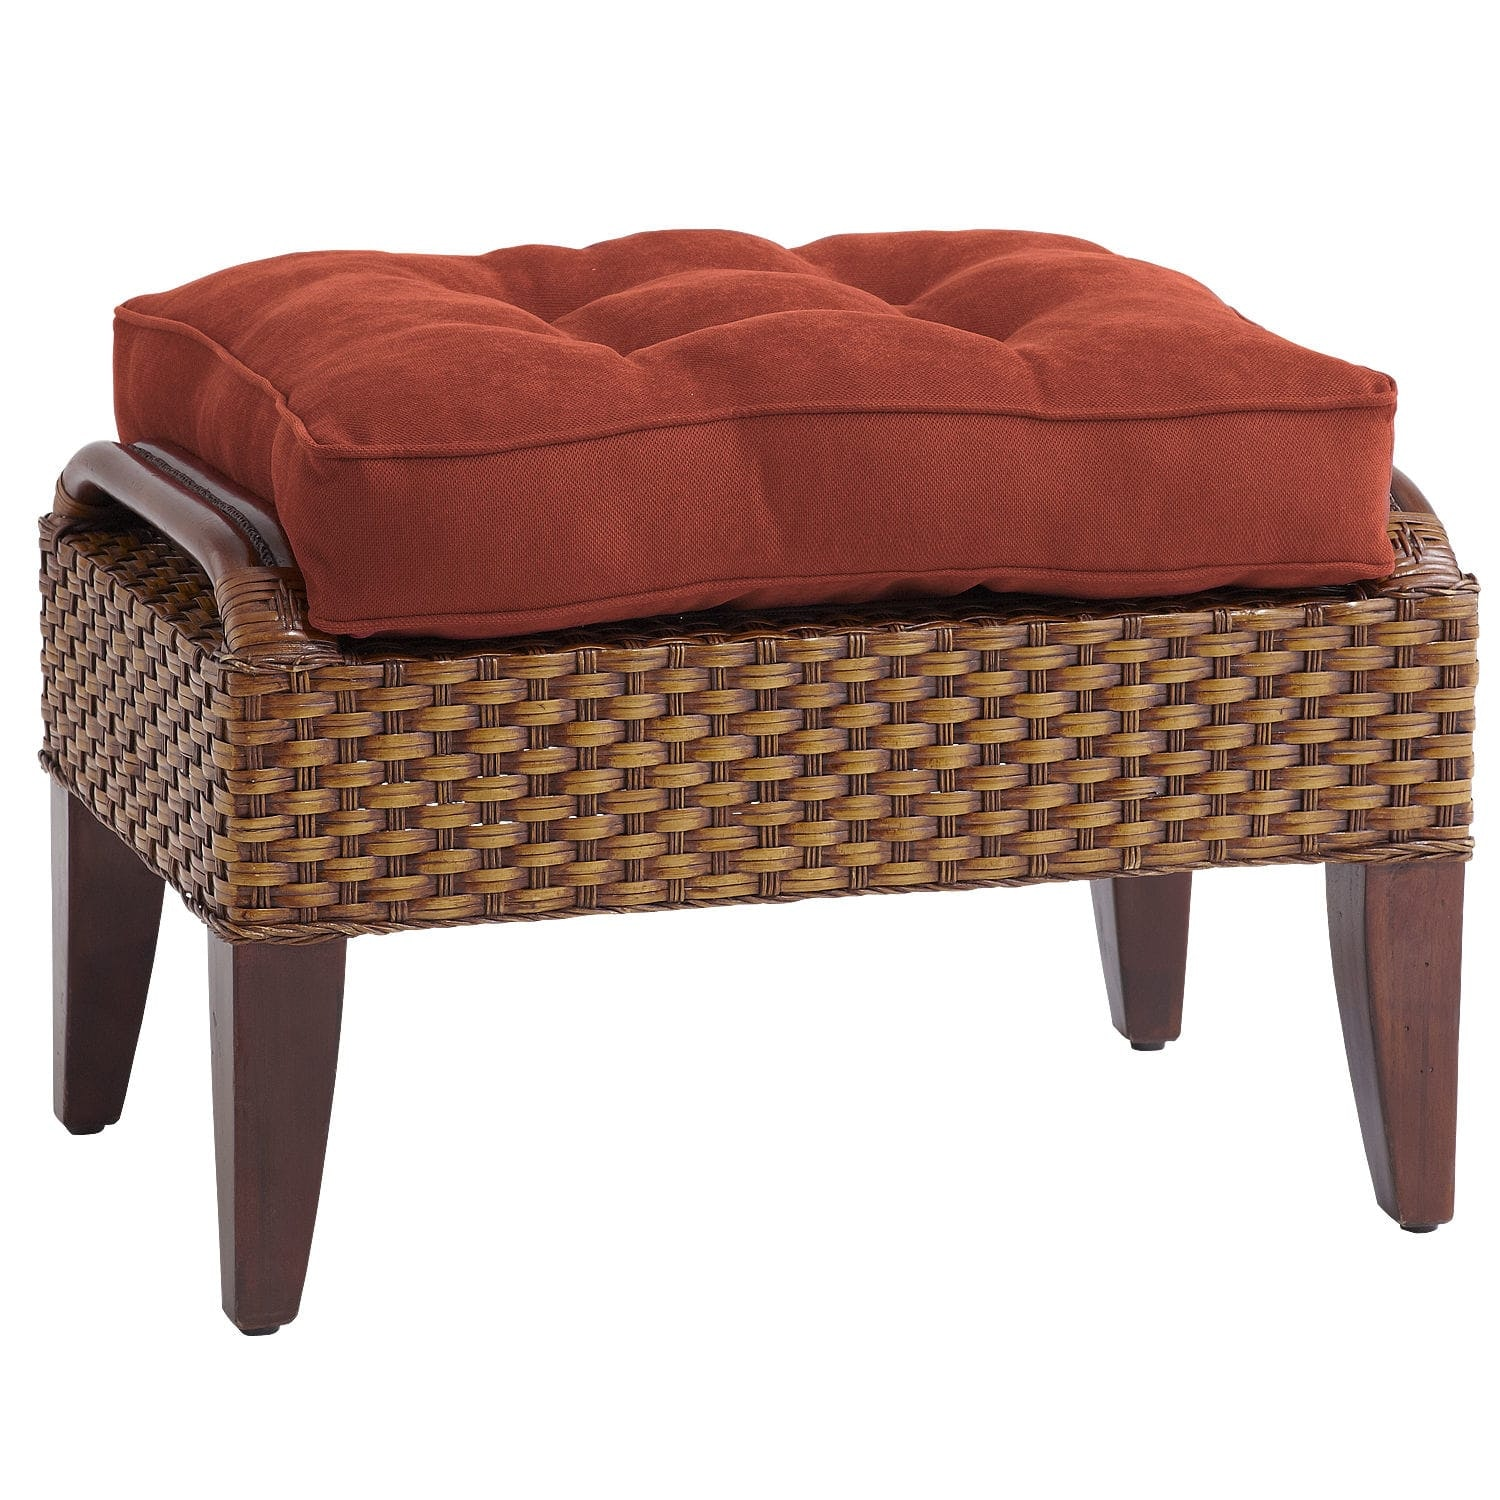 Pier One Imports Furniture Sale | Peir One Furniture | Pier One Wicker Furniture